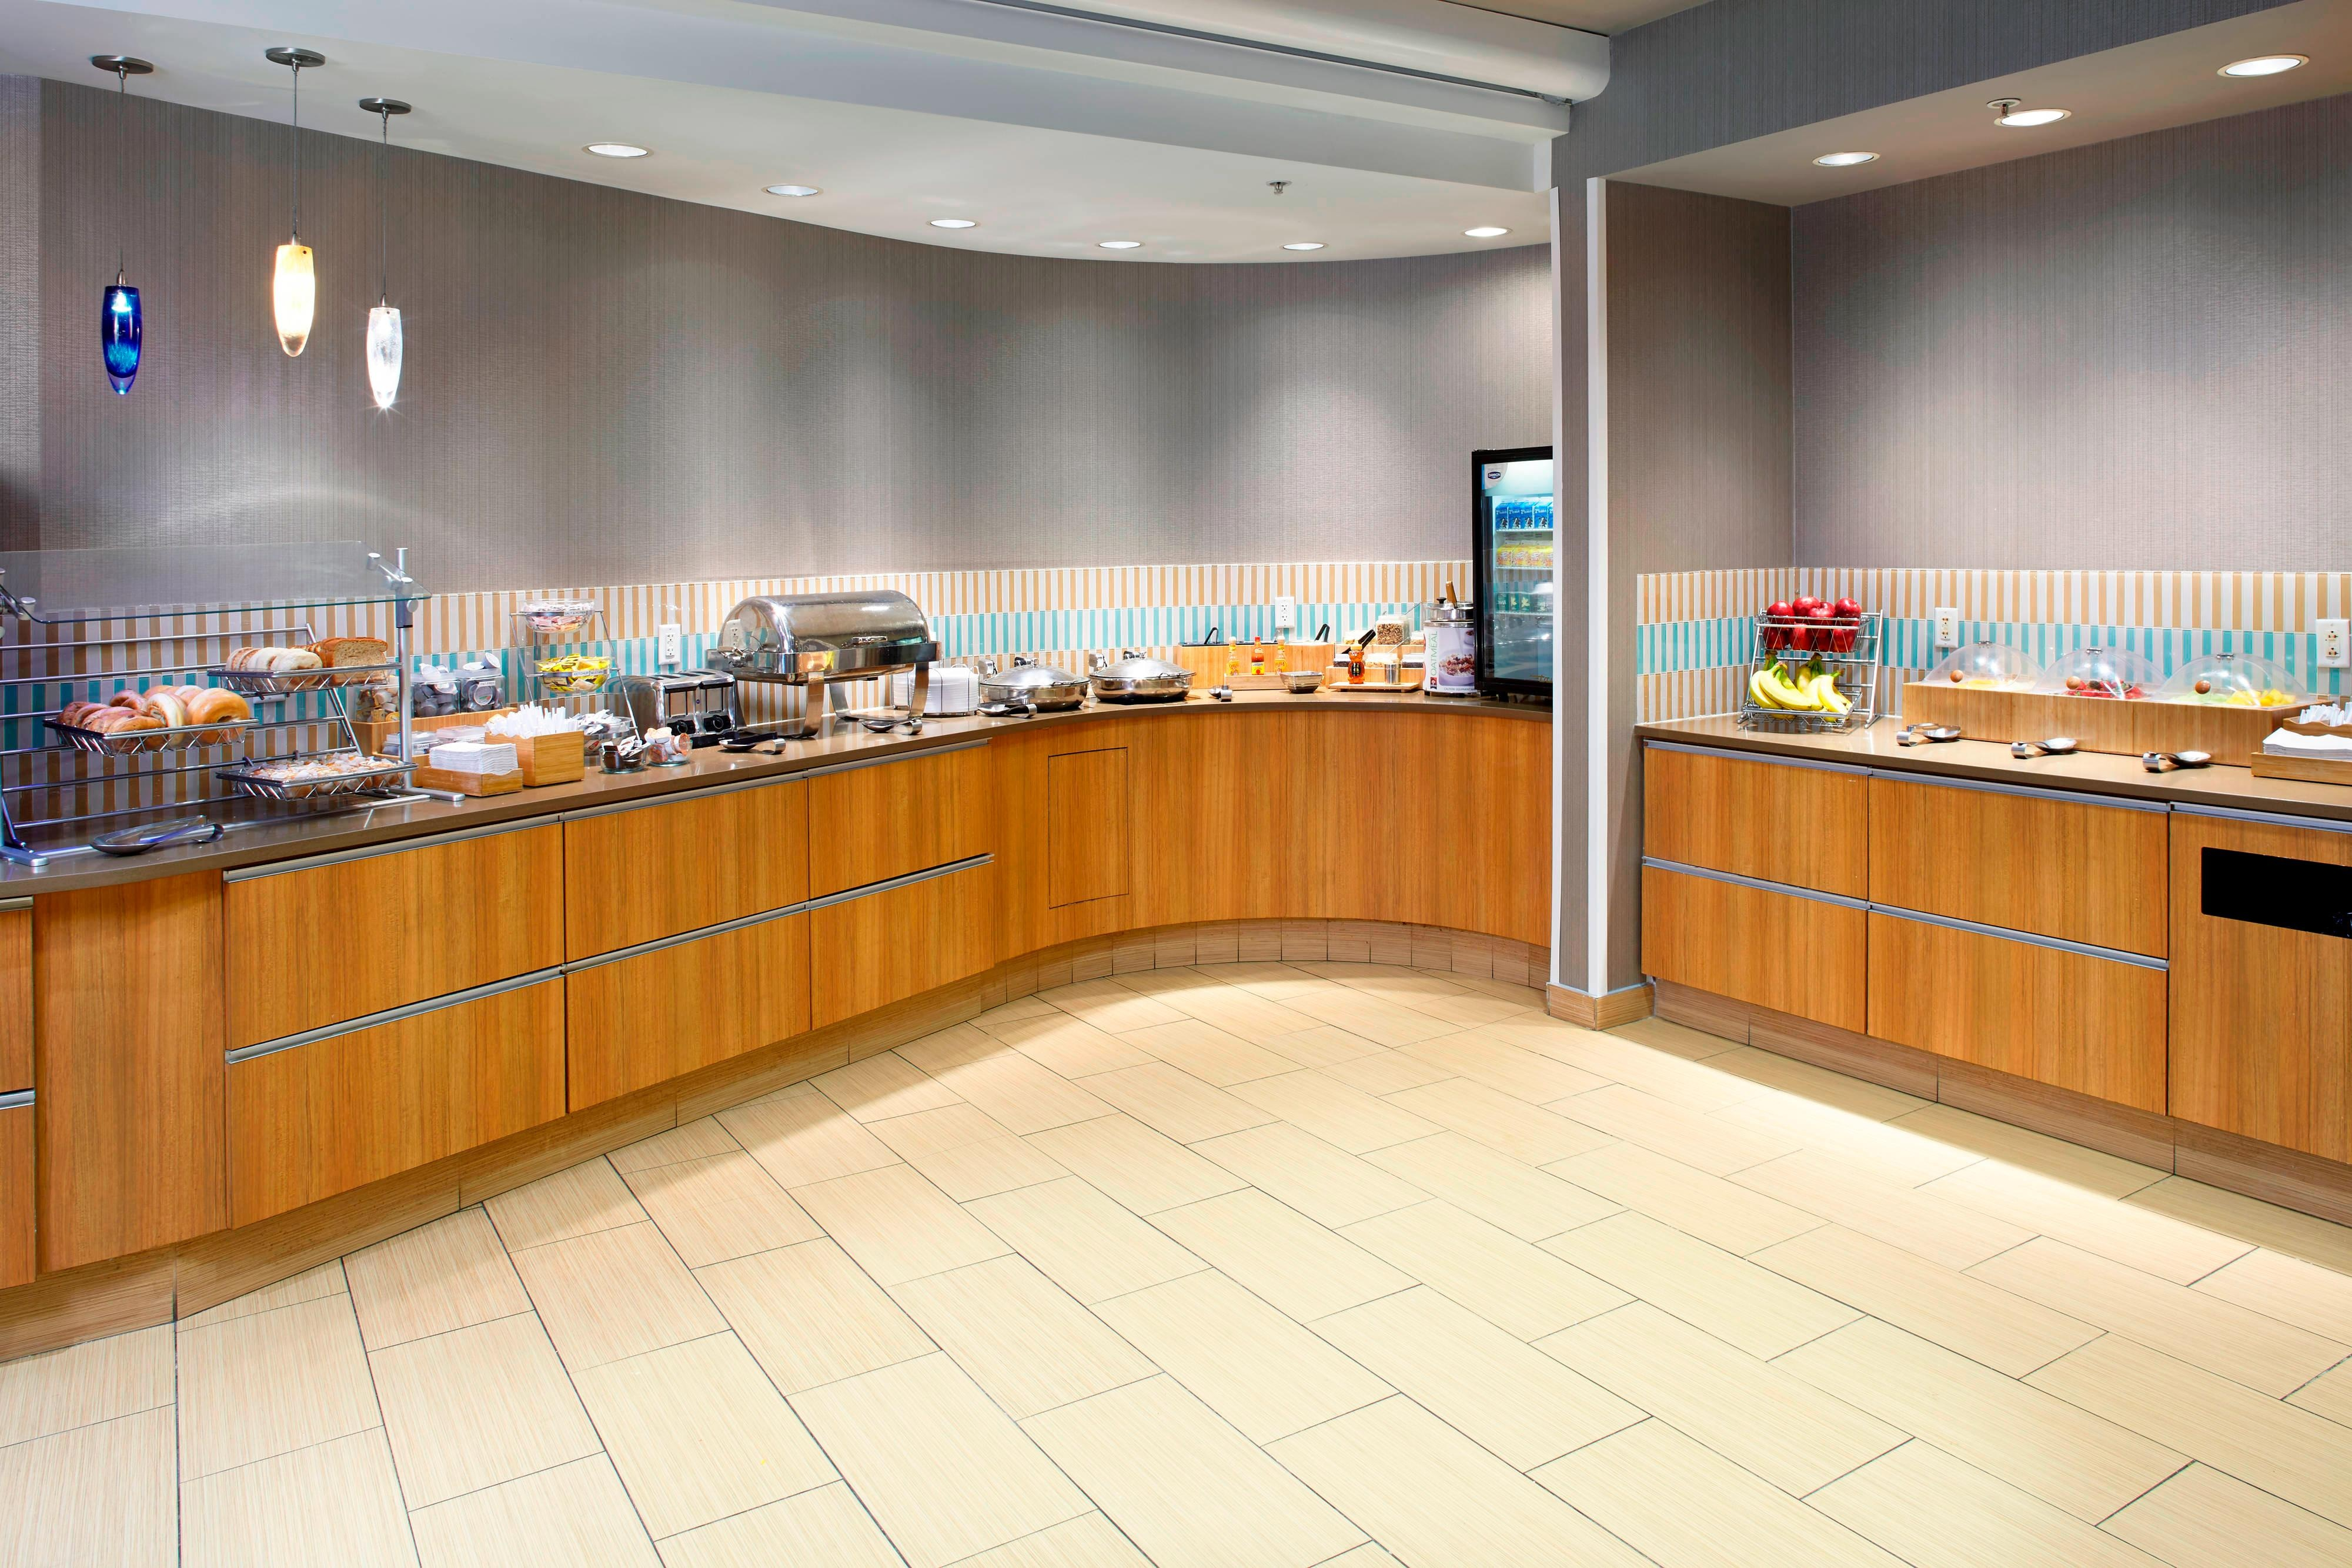 Springhill-Suites-Waukegan-Complimentary-Breakfast